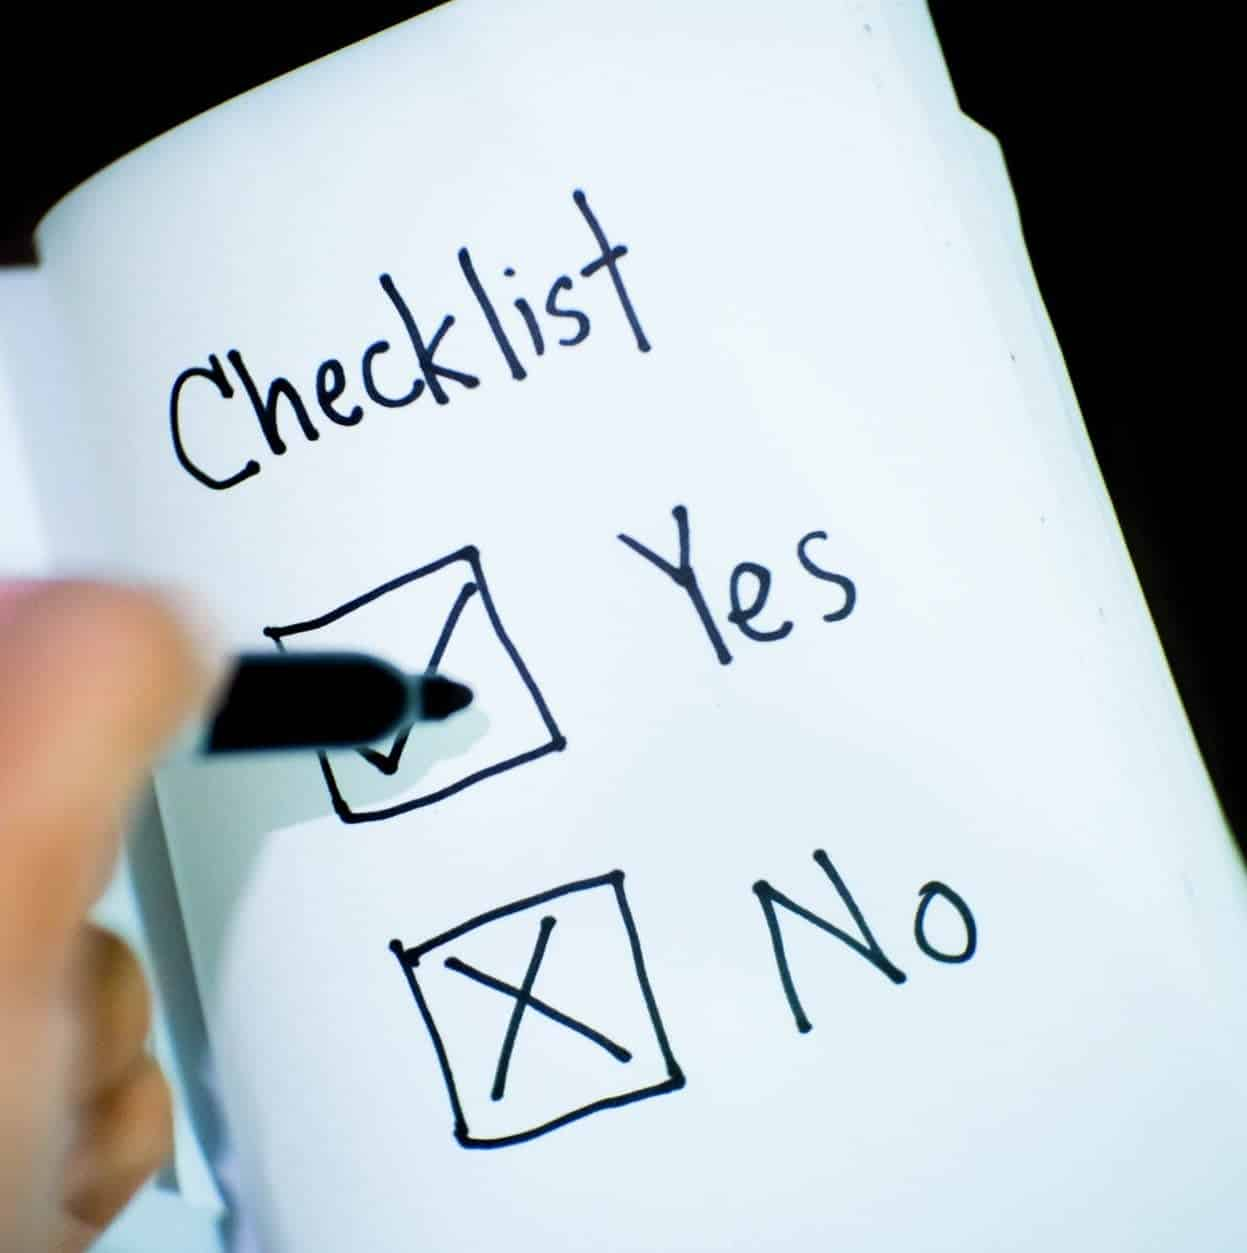 Checklist yes no yes aangevinkt